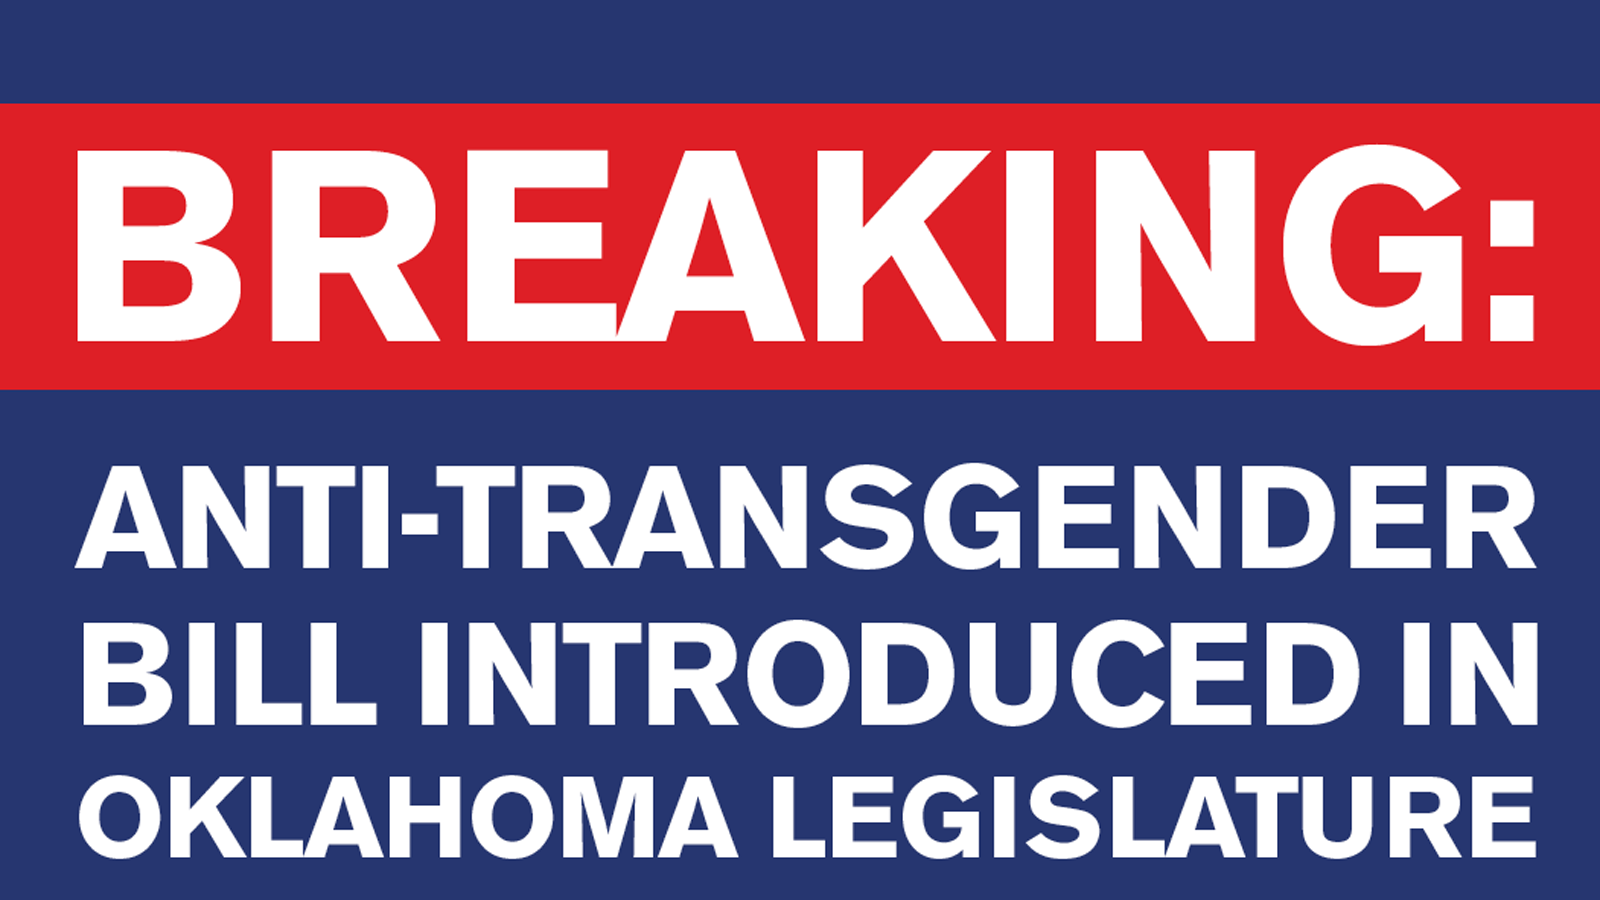 Oklahoma Lawmakers Introduce Vile Measure Attacking Transgender Youth